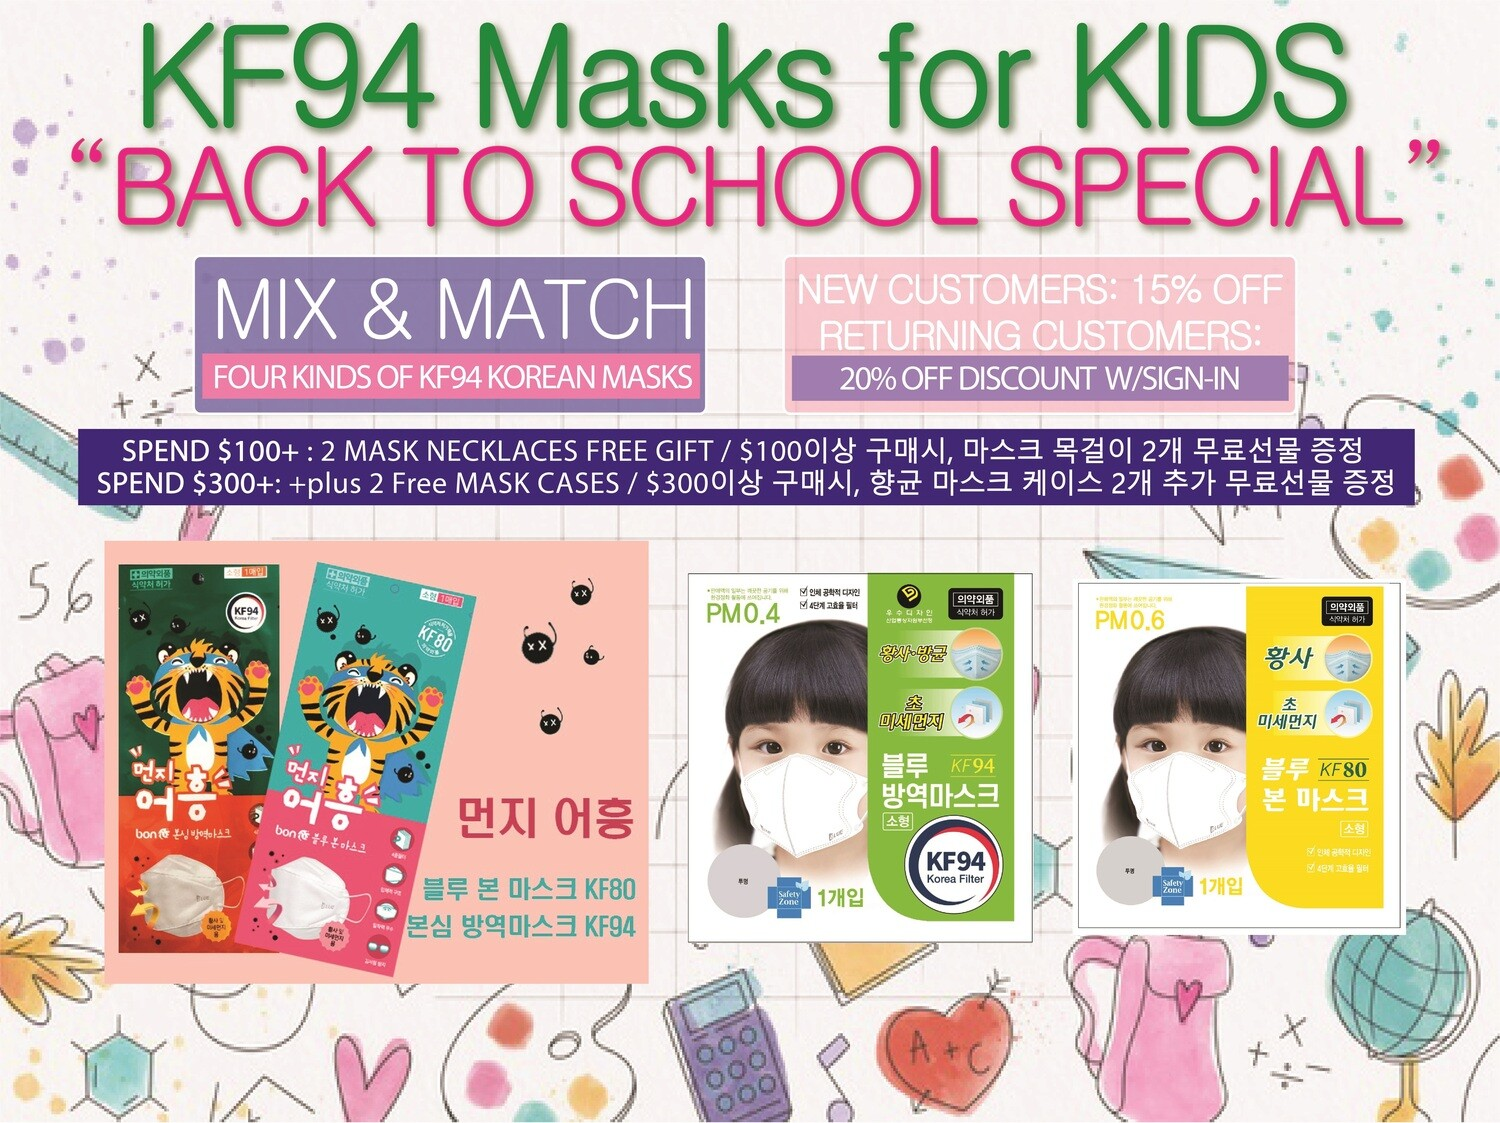 **SPECIAL SALE MIX&MATCH EVENT** ANY 4 KINDS OF KF94 MASKS FOR KIDS 100pcs 준비하시고 고르세요!!  마스크! 이젠 취향대로 원하는대로 골라서 사자! (FREE GIFTS WITH THIS DEAL)